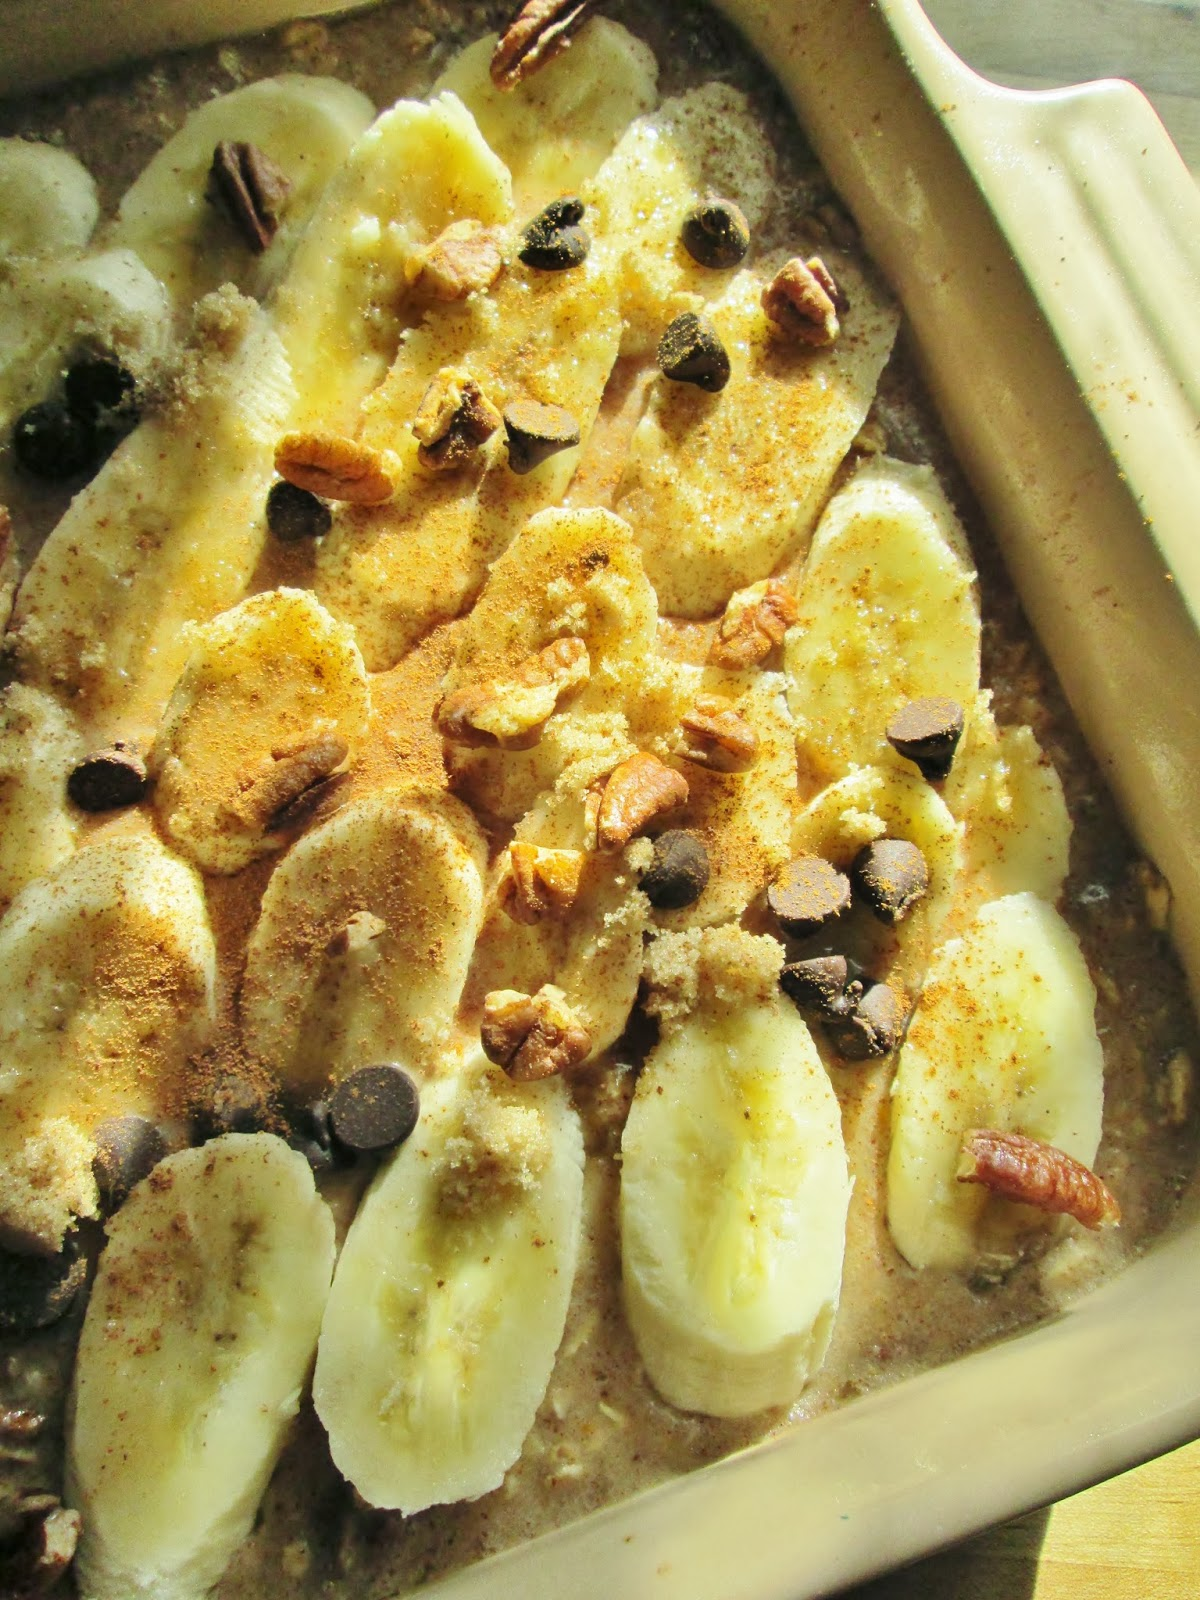 Squish Delish Recipes : Mama Nibbles: Baked Oatmeal Sunrise #WalmartProduce